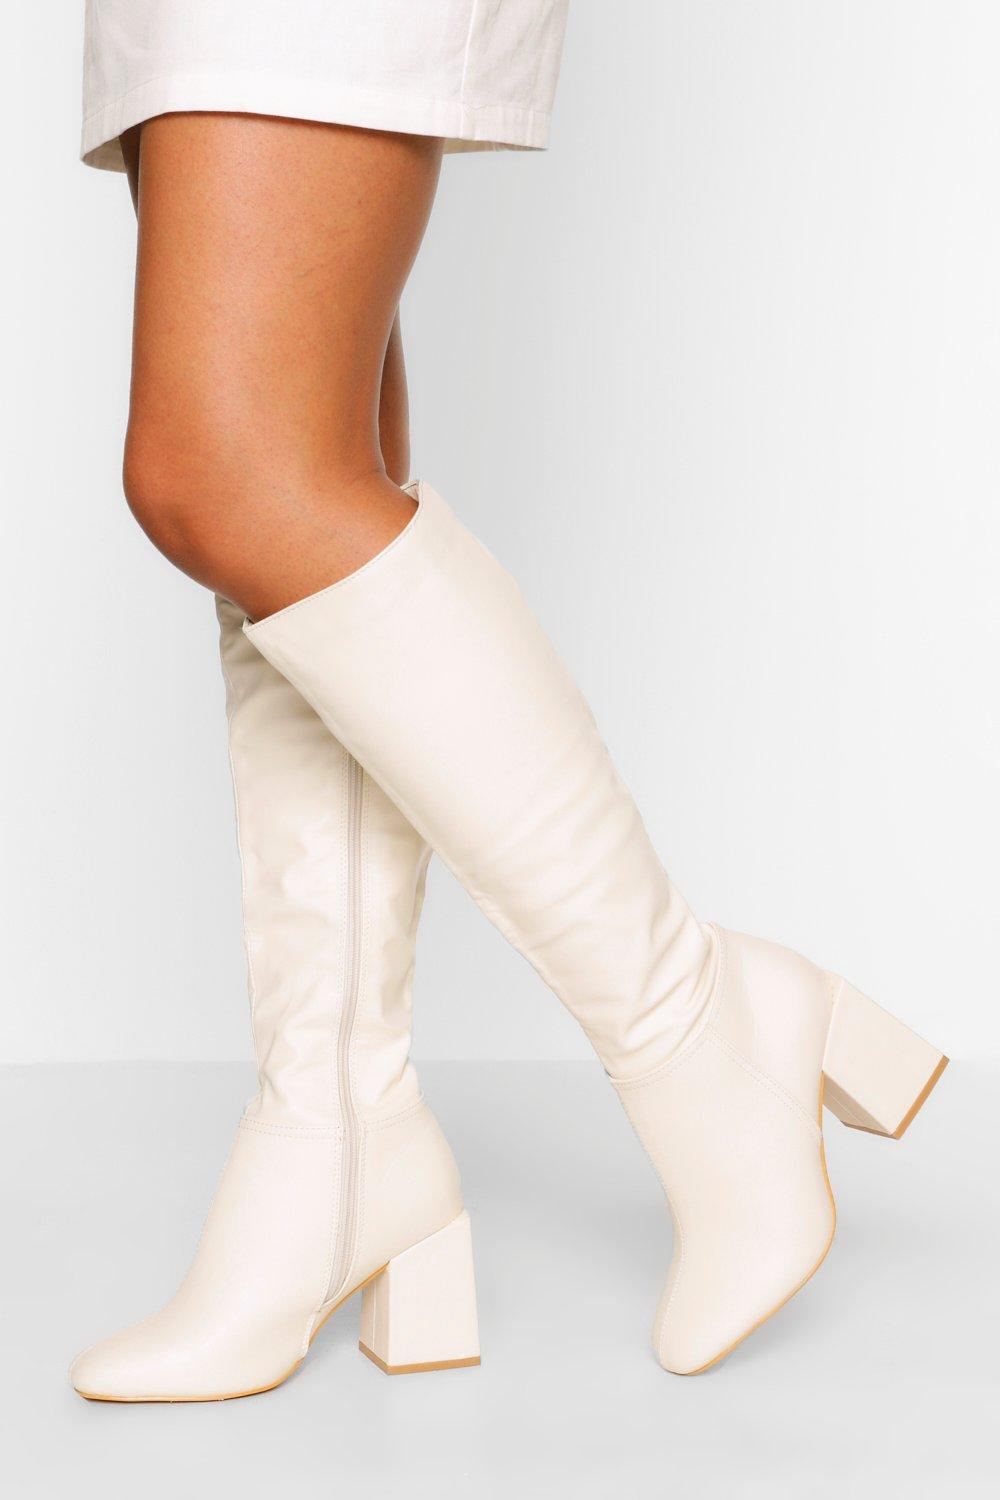 70s Shoes, Platforms, Boots, Heels | 1970s Shoes Womens Wide Fit Block Heel Knee High Boot - White - 10 $42.00 AT vintagedancer.com